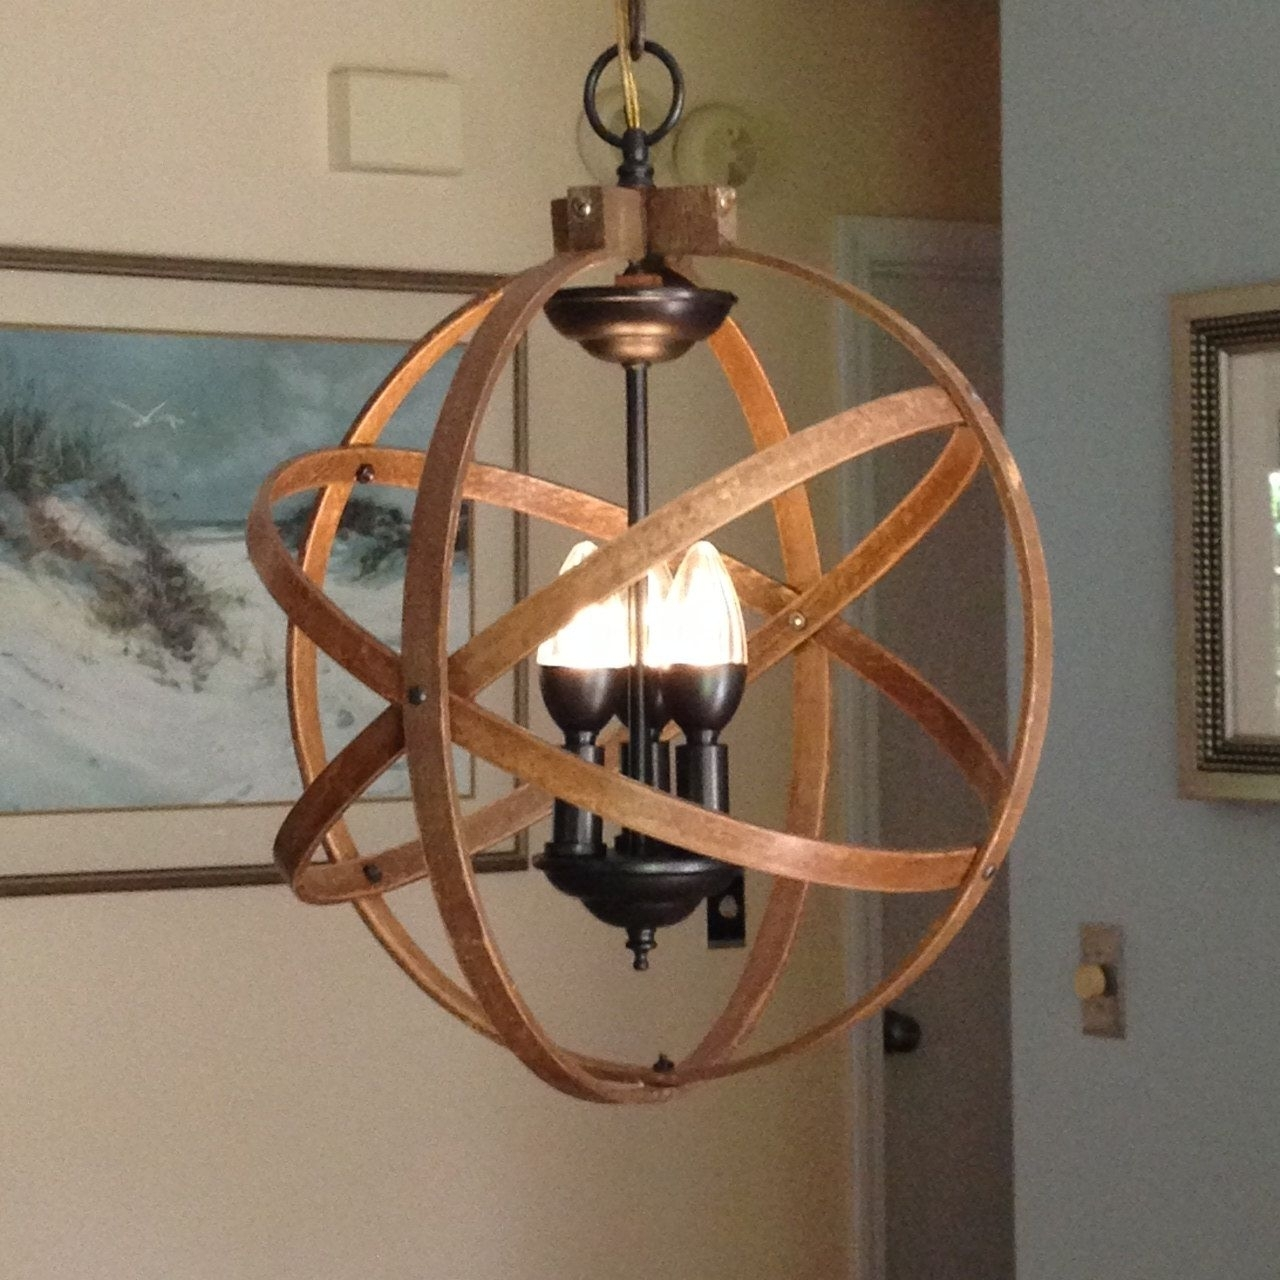 "Most Popular Orb Chandelier Light 14"" Atomic Light Fixture Industrial Lighting Pertaining To Atom Chandeliers (View 4 of 15)"